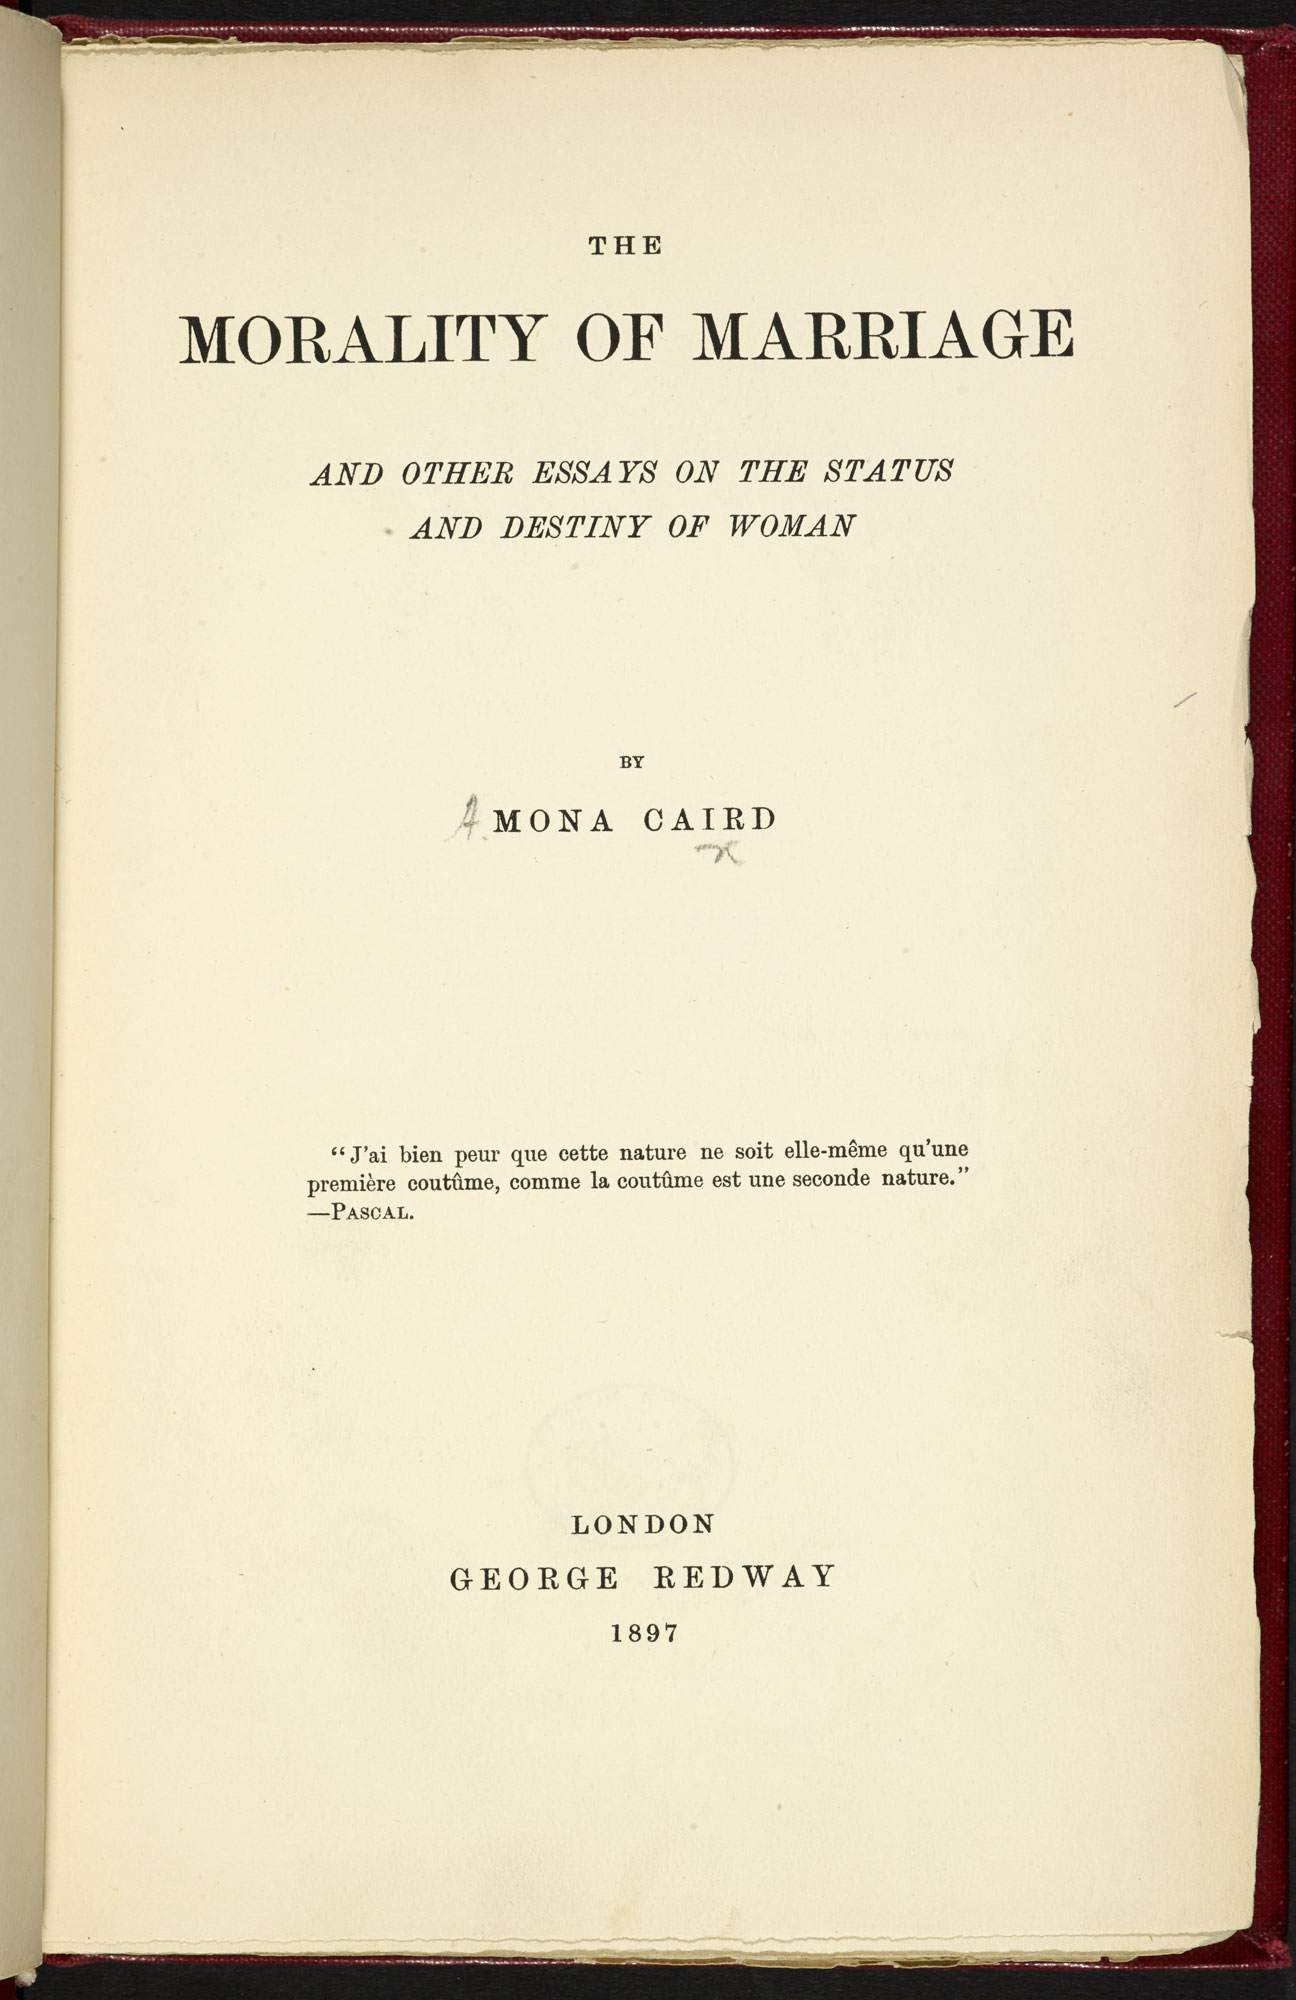 The Morality of Marriage [page: frontispiece and title page]